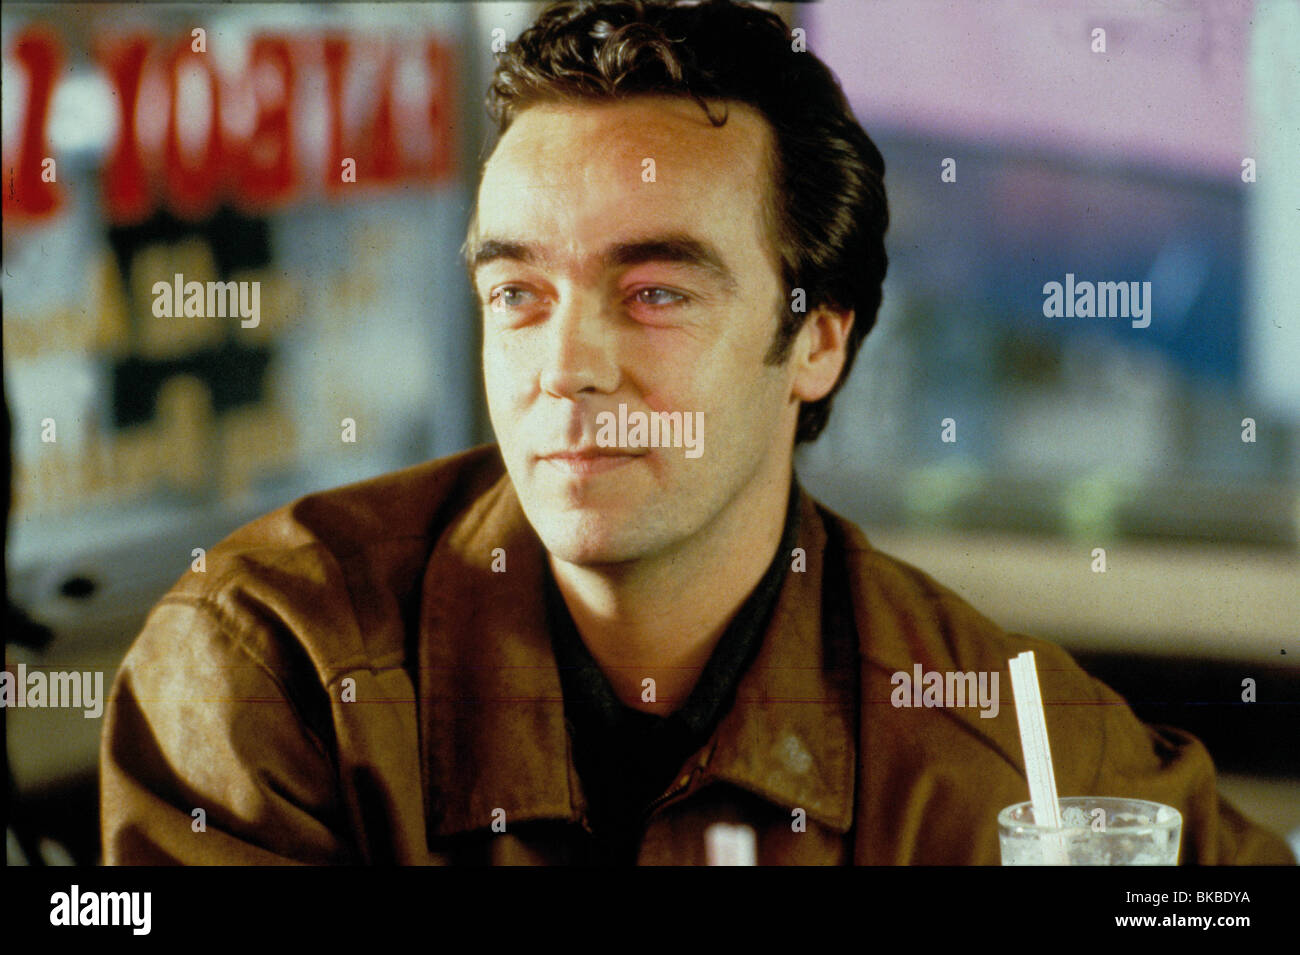 SLIDING DOORS (1997) JOHN HANNAH SLGD 040  sc 1 st  Alamy & SLIDING DOORS (1997) JOHN HANNAH SLGD 040 Stock Photo: 29141262 - Alamy